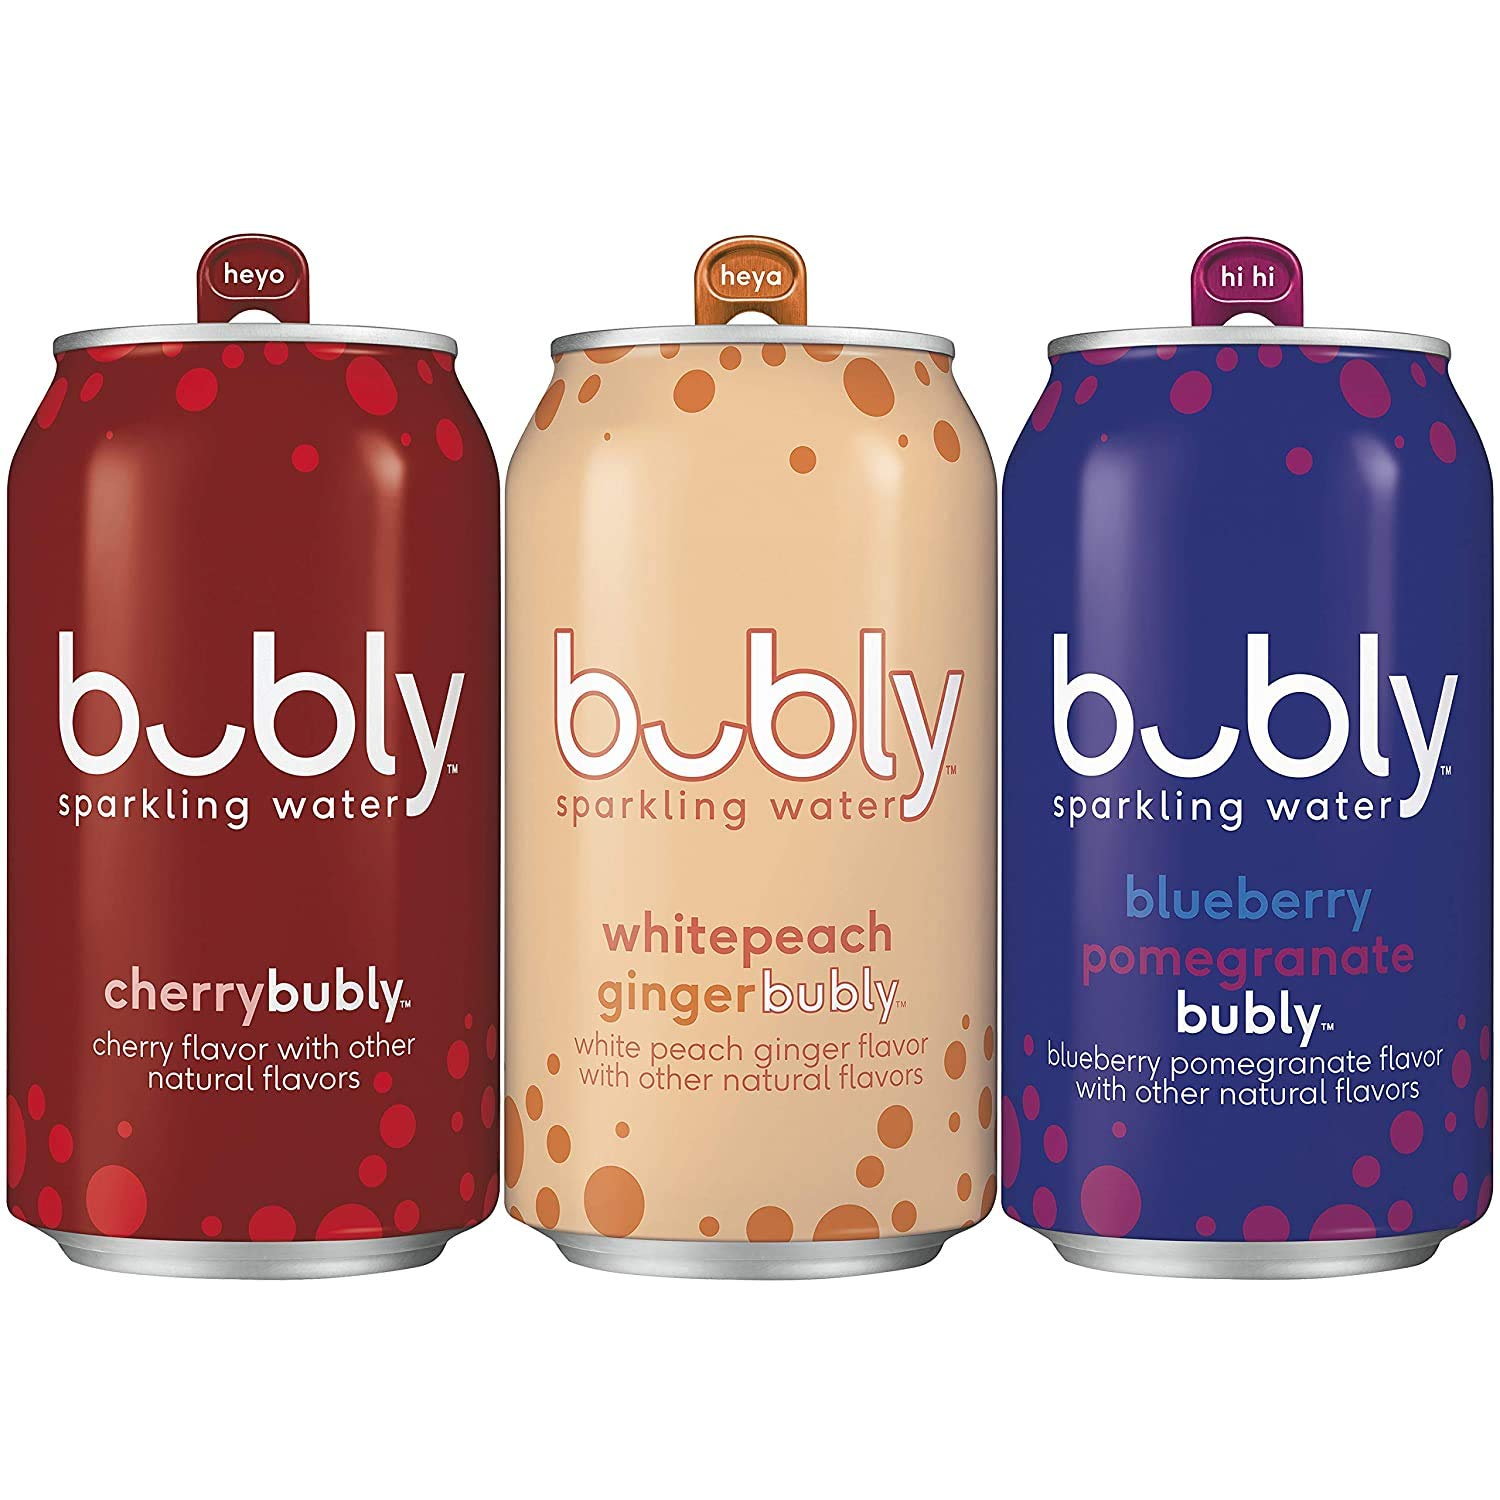 bubly Sparkling Water, Red White & Blue Variety Pack, 12 fl oz Cans (18 Pack), 1 Pack